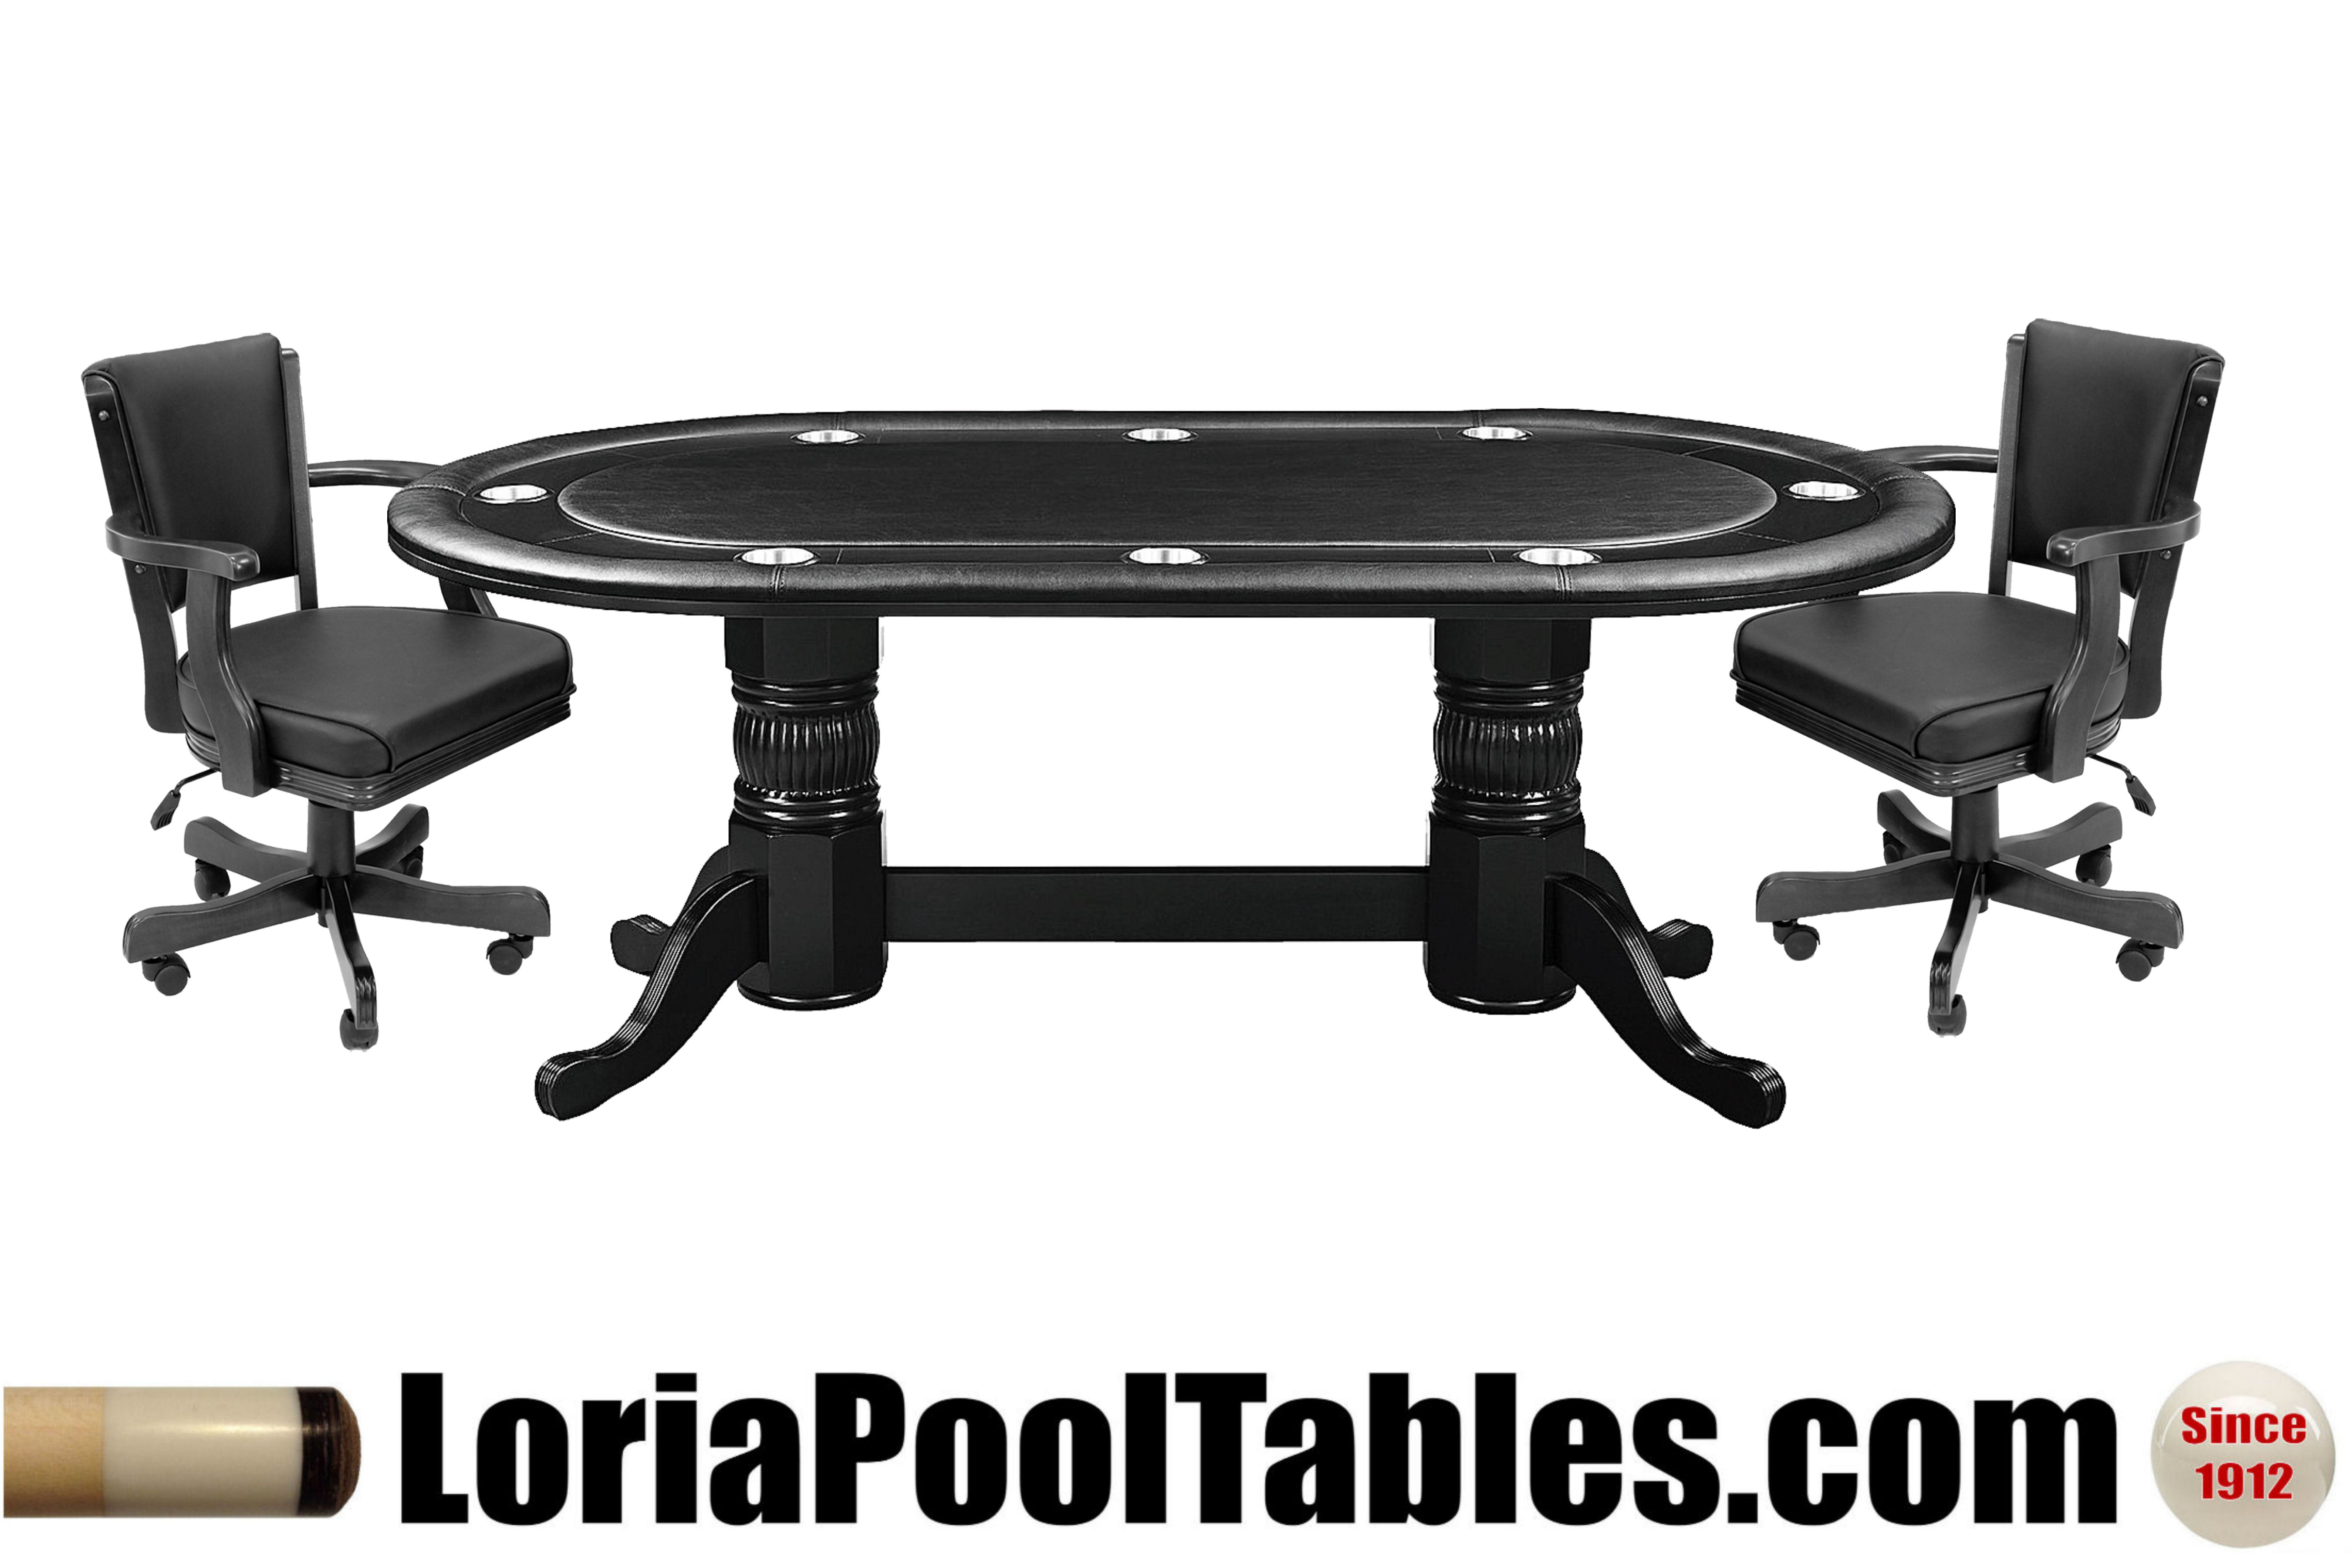 84 Pedestal Poker Table with Optional Dining Top Loria Awards